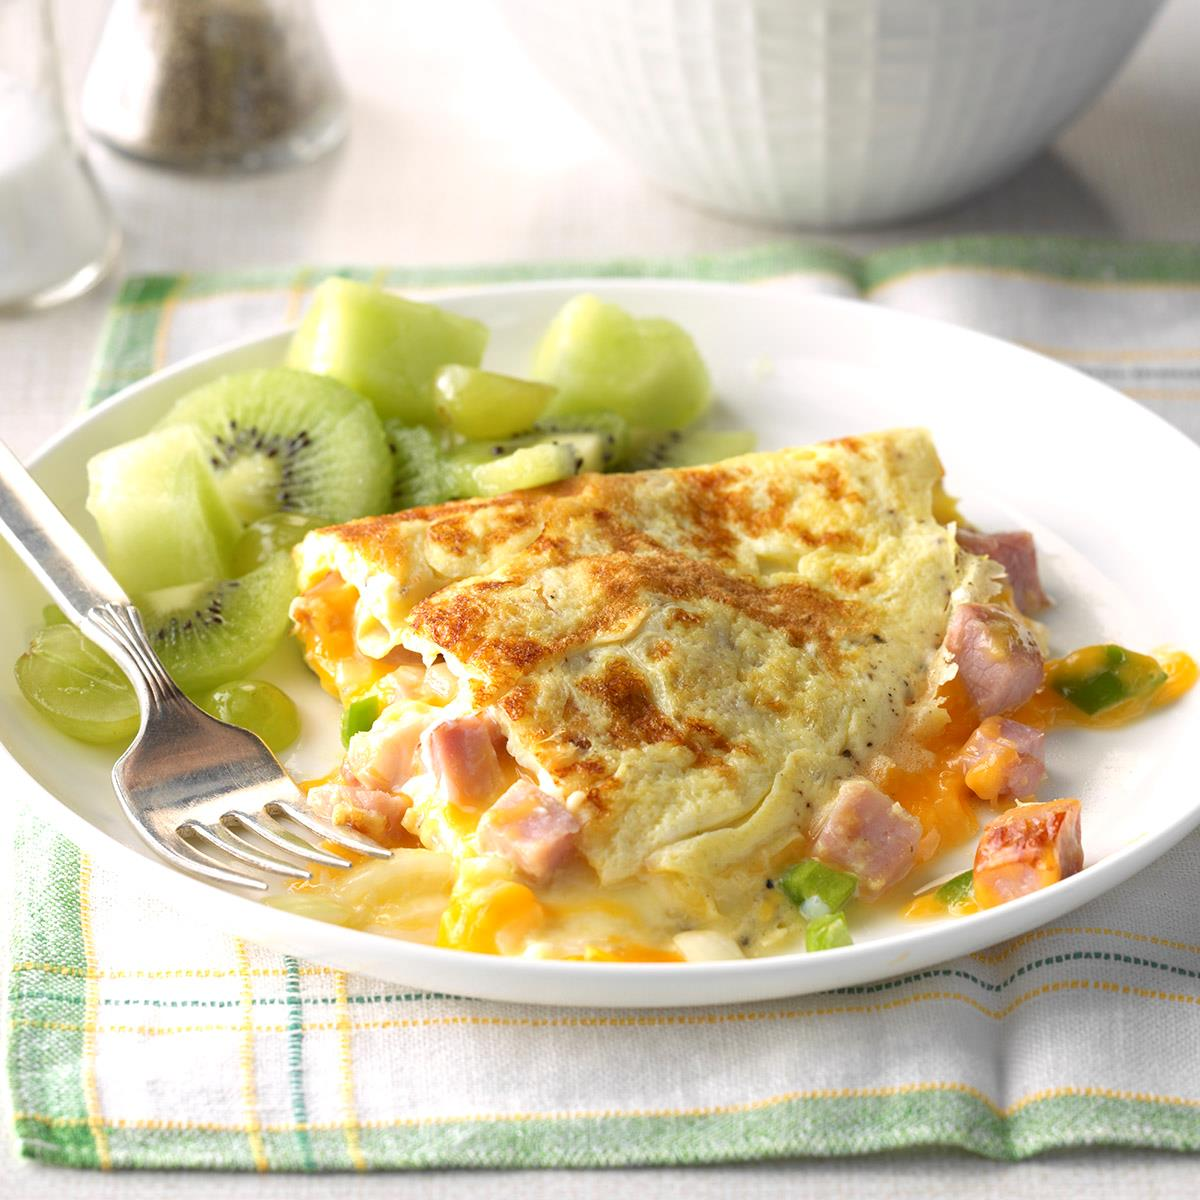 Denver Omelet Salad Recipe: French Omelet Recipe